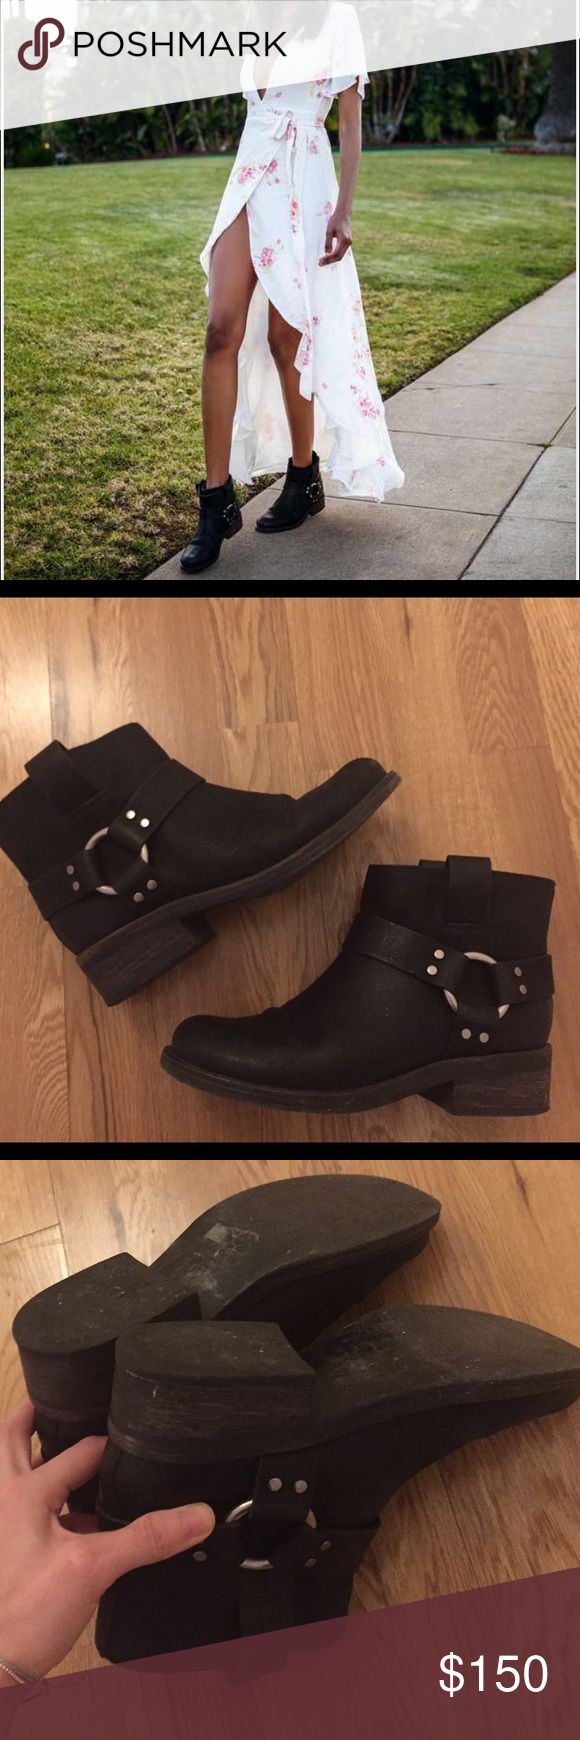 All Saints Obert leather biker boots *like new Excellent condition and conditioned leather all Saints black leather ankle biker boots. Style: Obert. No zippers just sling in, as shown in last pic, fits true to size, no wearing down of heel as shown in pic 3, heel 4cm All Saints Shoes Ankle Boots & Booties